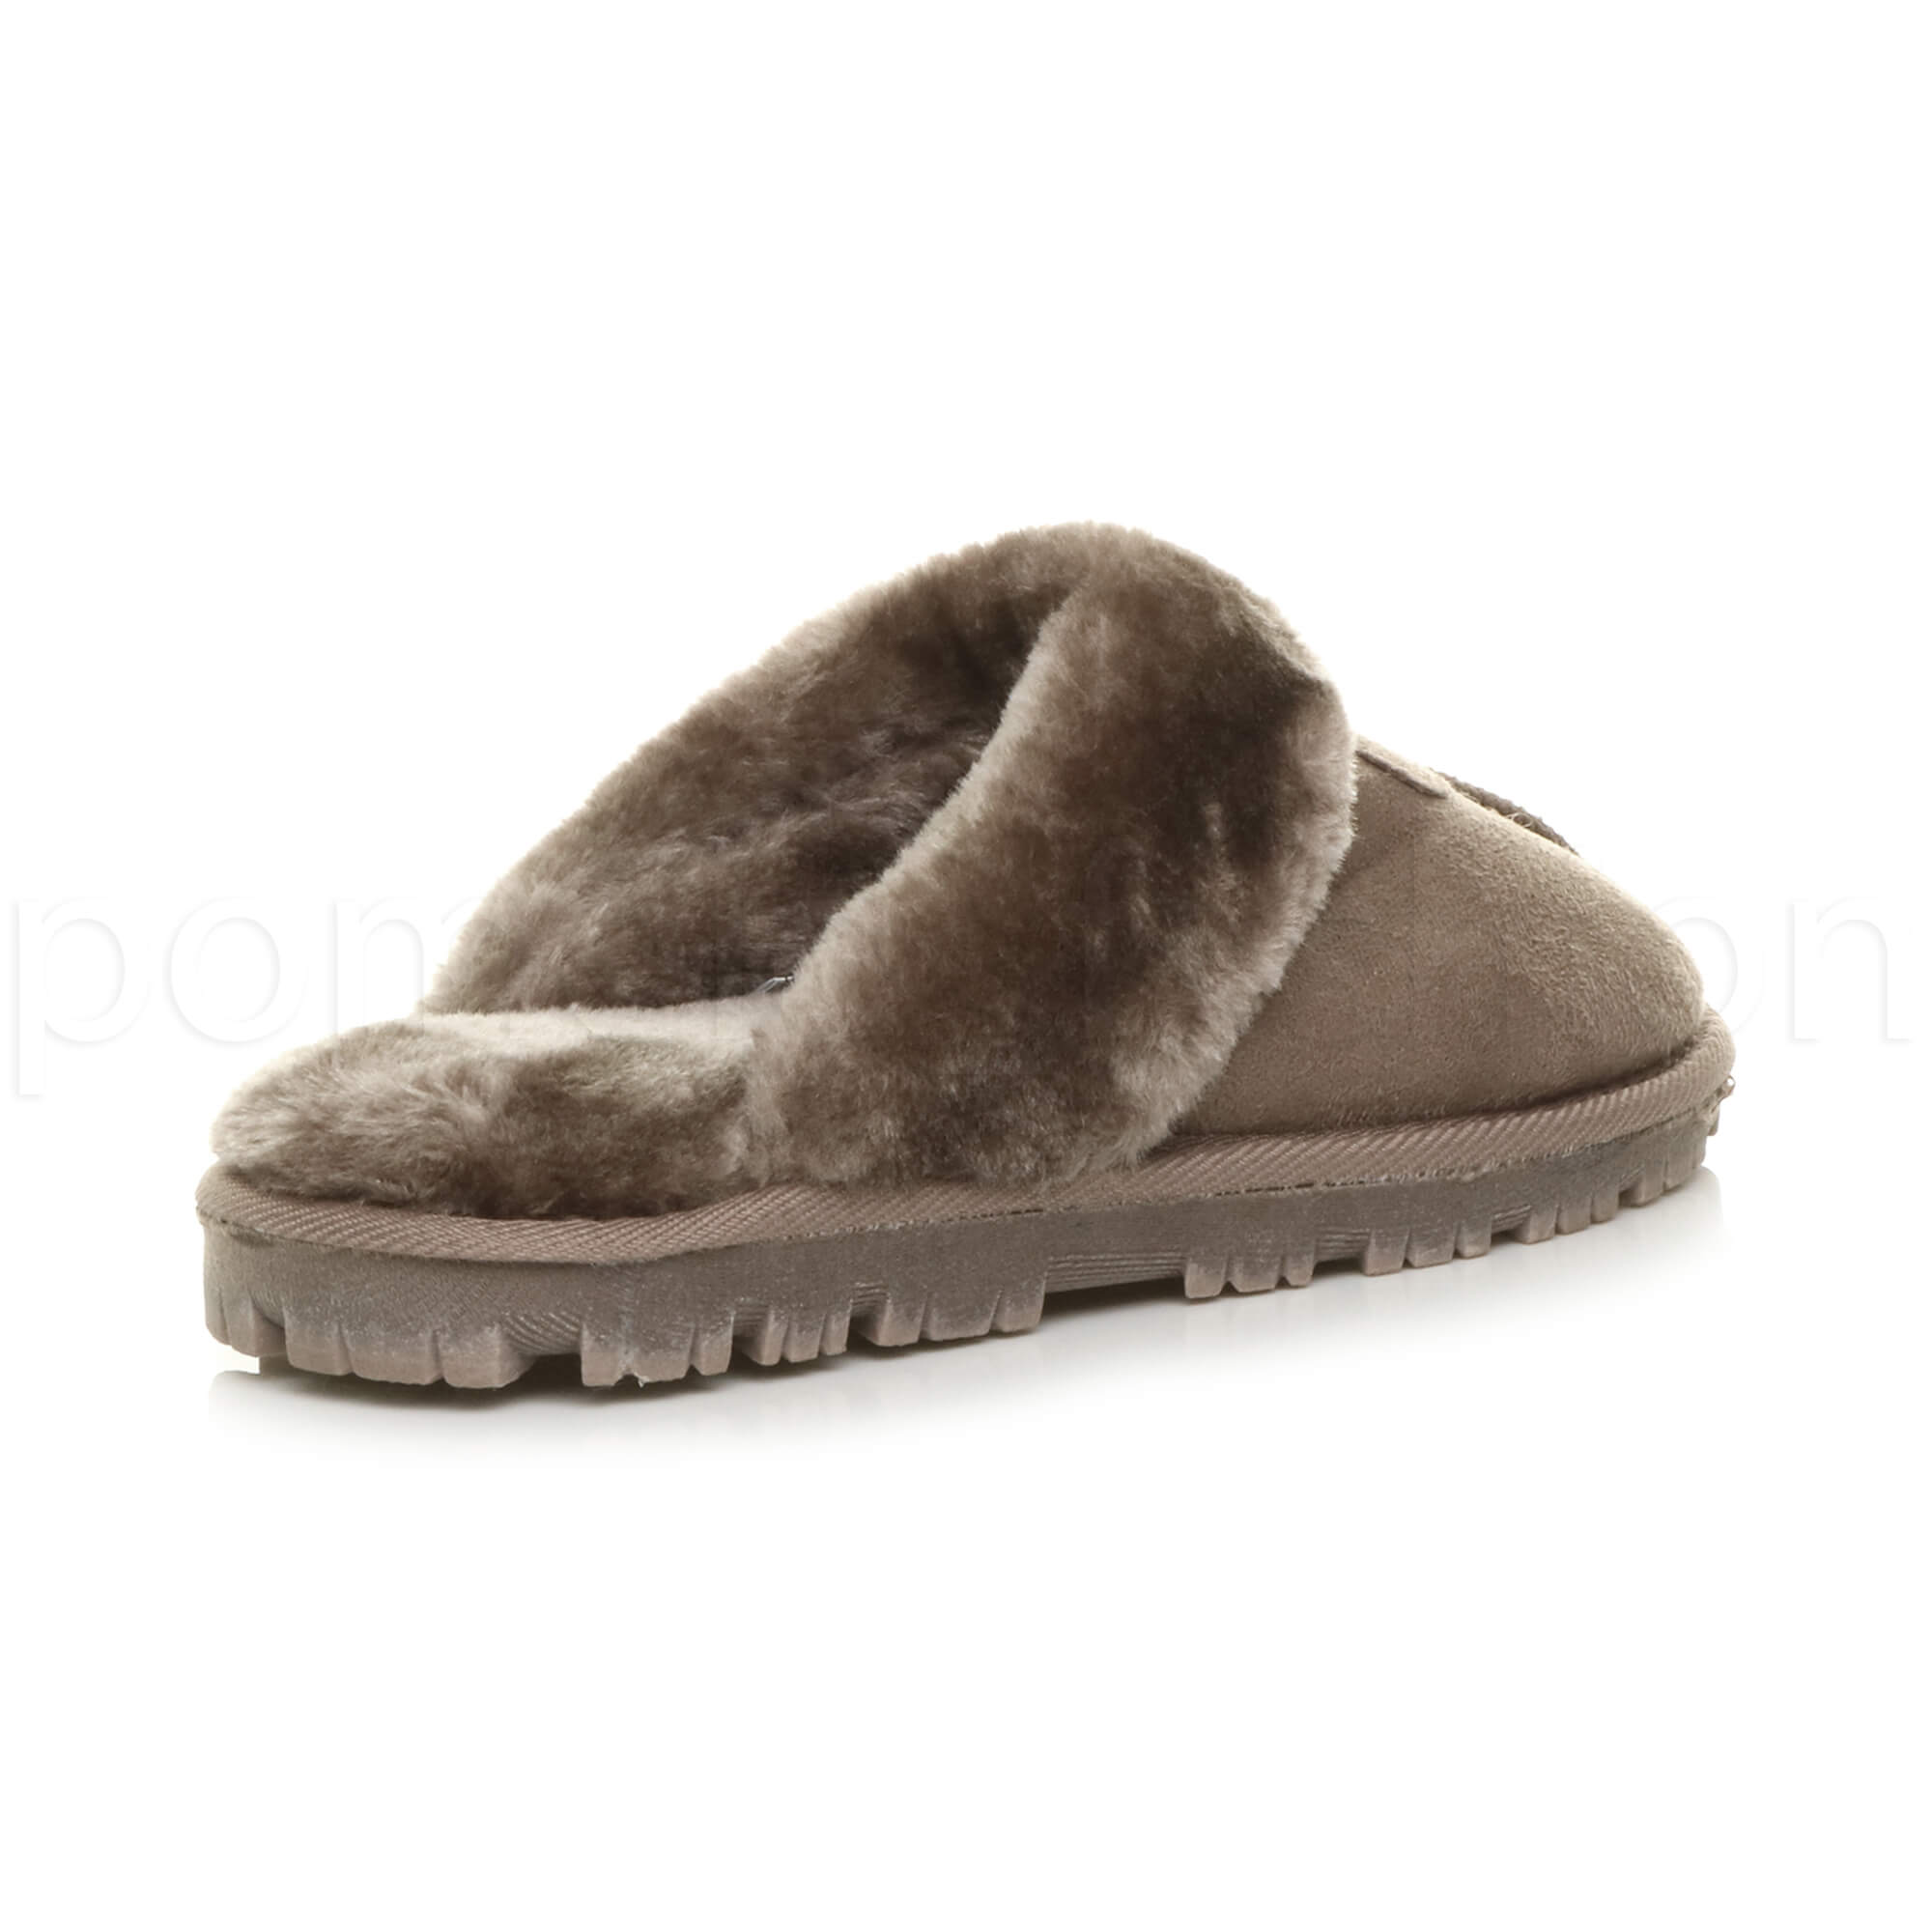 WOMENS-LADIES-FLAT-FUR-LINED-COMFORTABLE-WINTER-MULES-SLIPPERS-HOUSE-SHOES-SIZE thumbnail 54